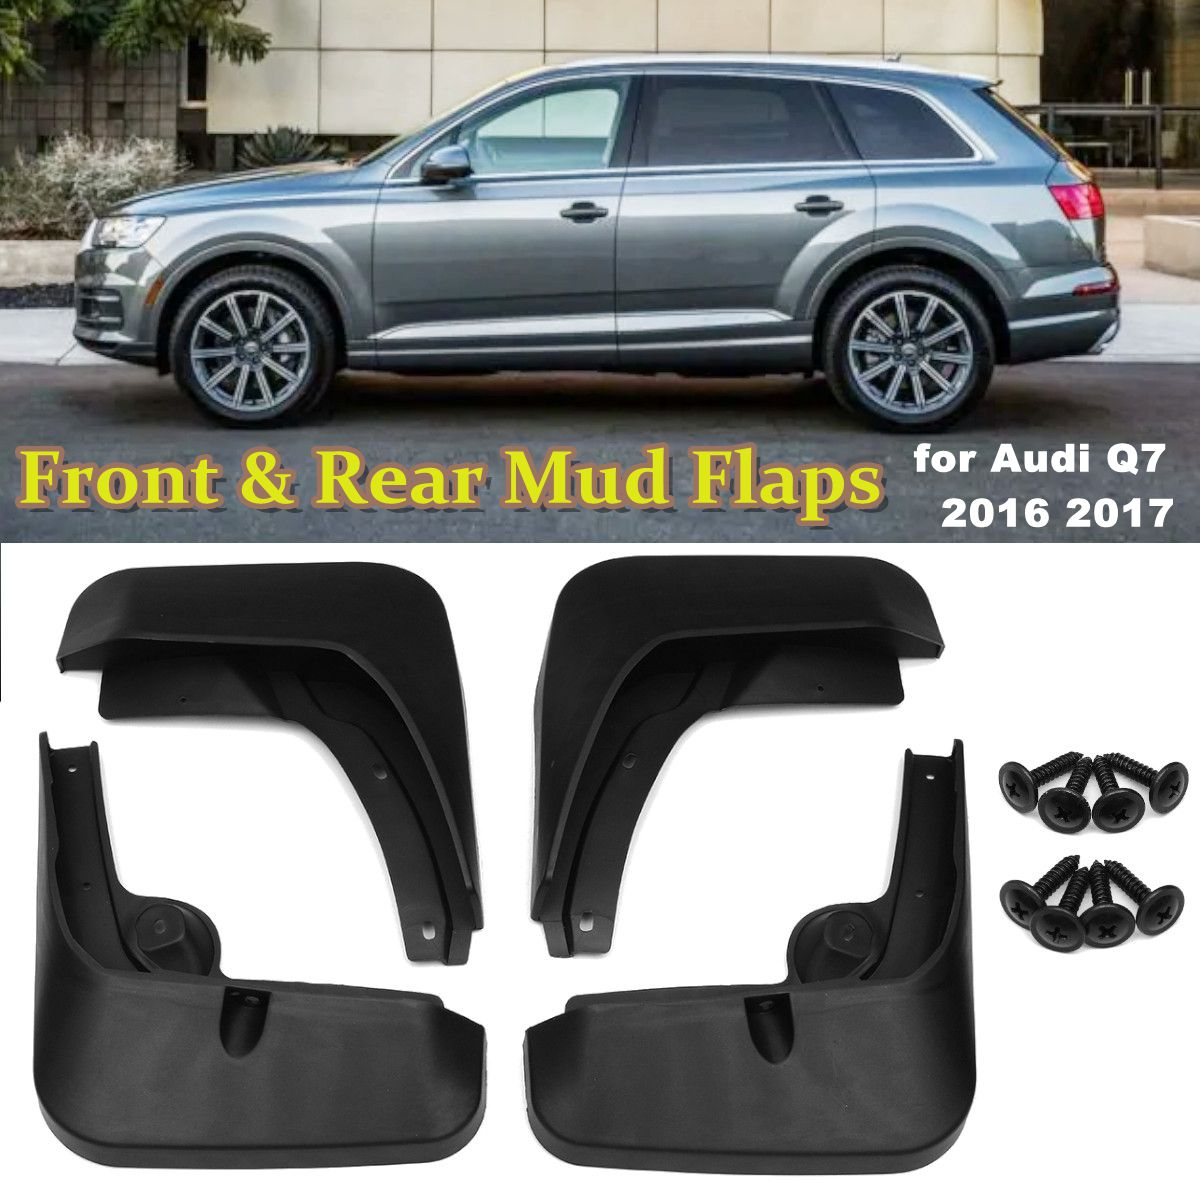 Front Rear Mud Flaps for Audi Q7 2016 2017 Car Fender Mudguards Splash Guards Mudflaps Accessories